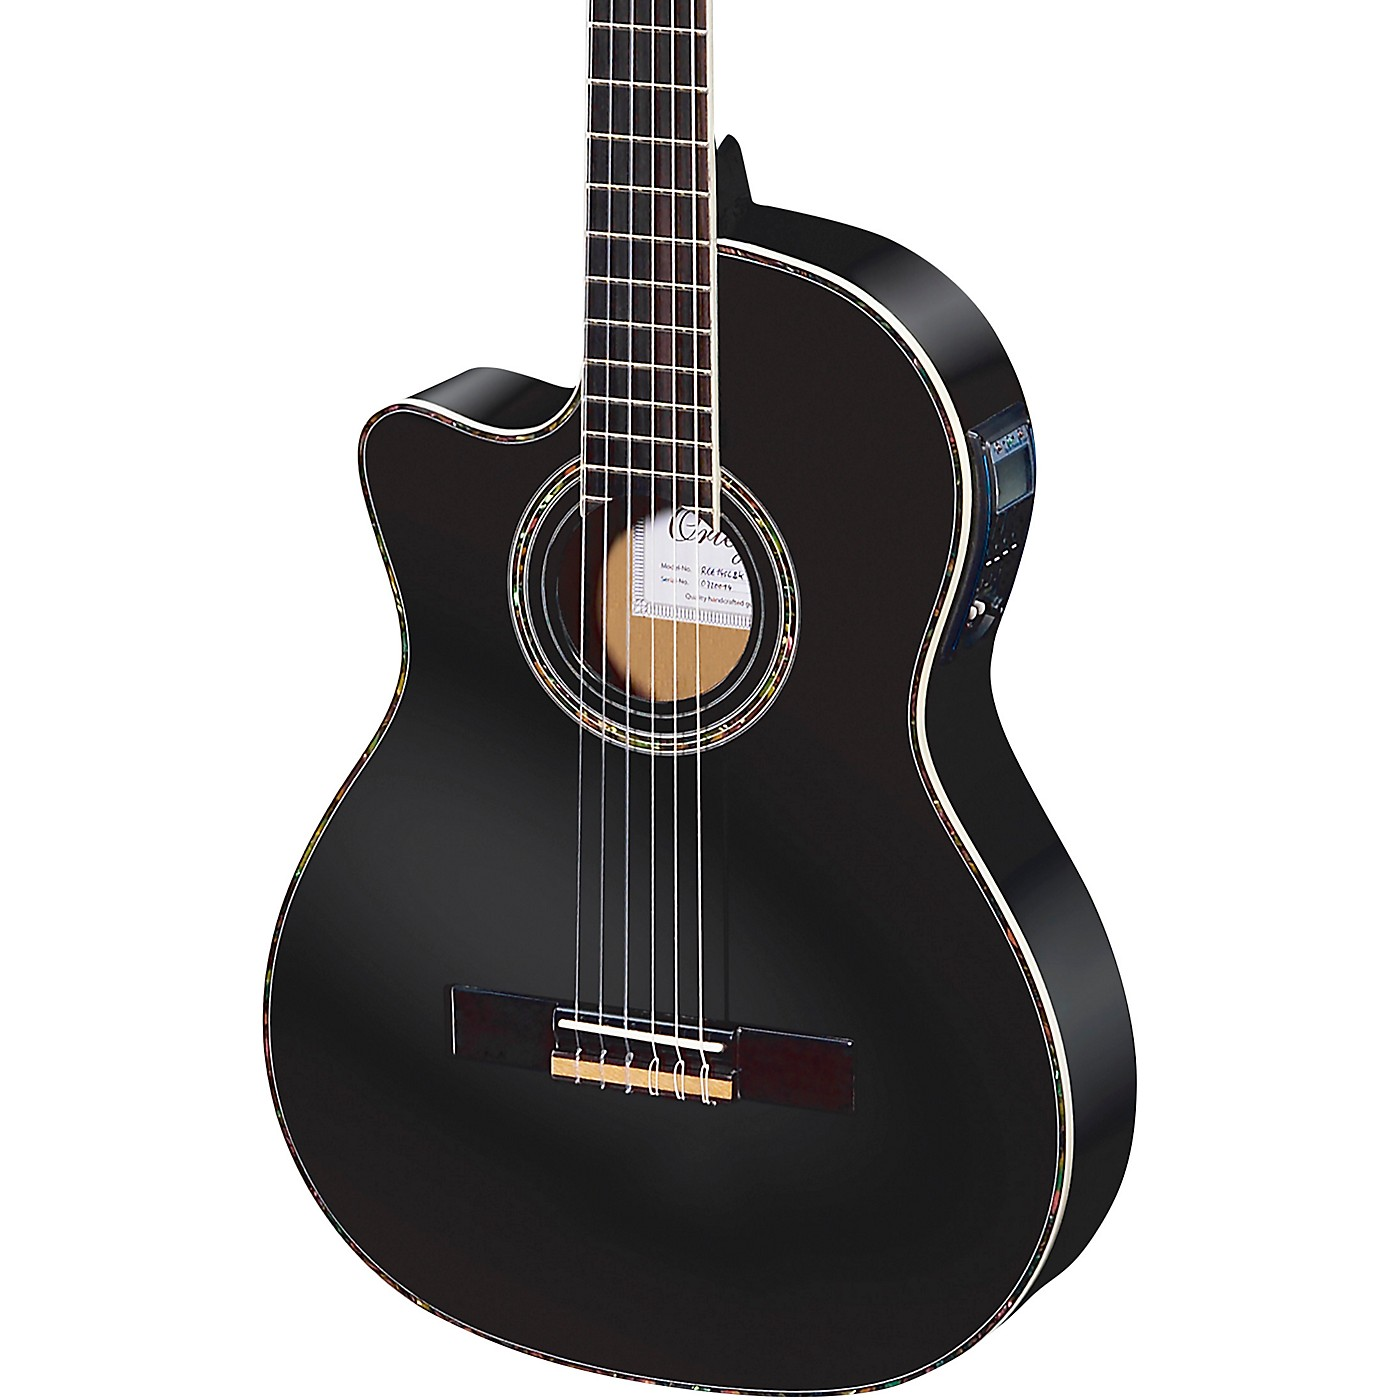 Ortega Family Series Pro RCE145LBK Thinline Acoustic-Electric Left-Handed Nylon Guitar thumbnail